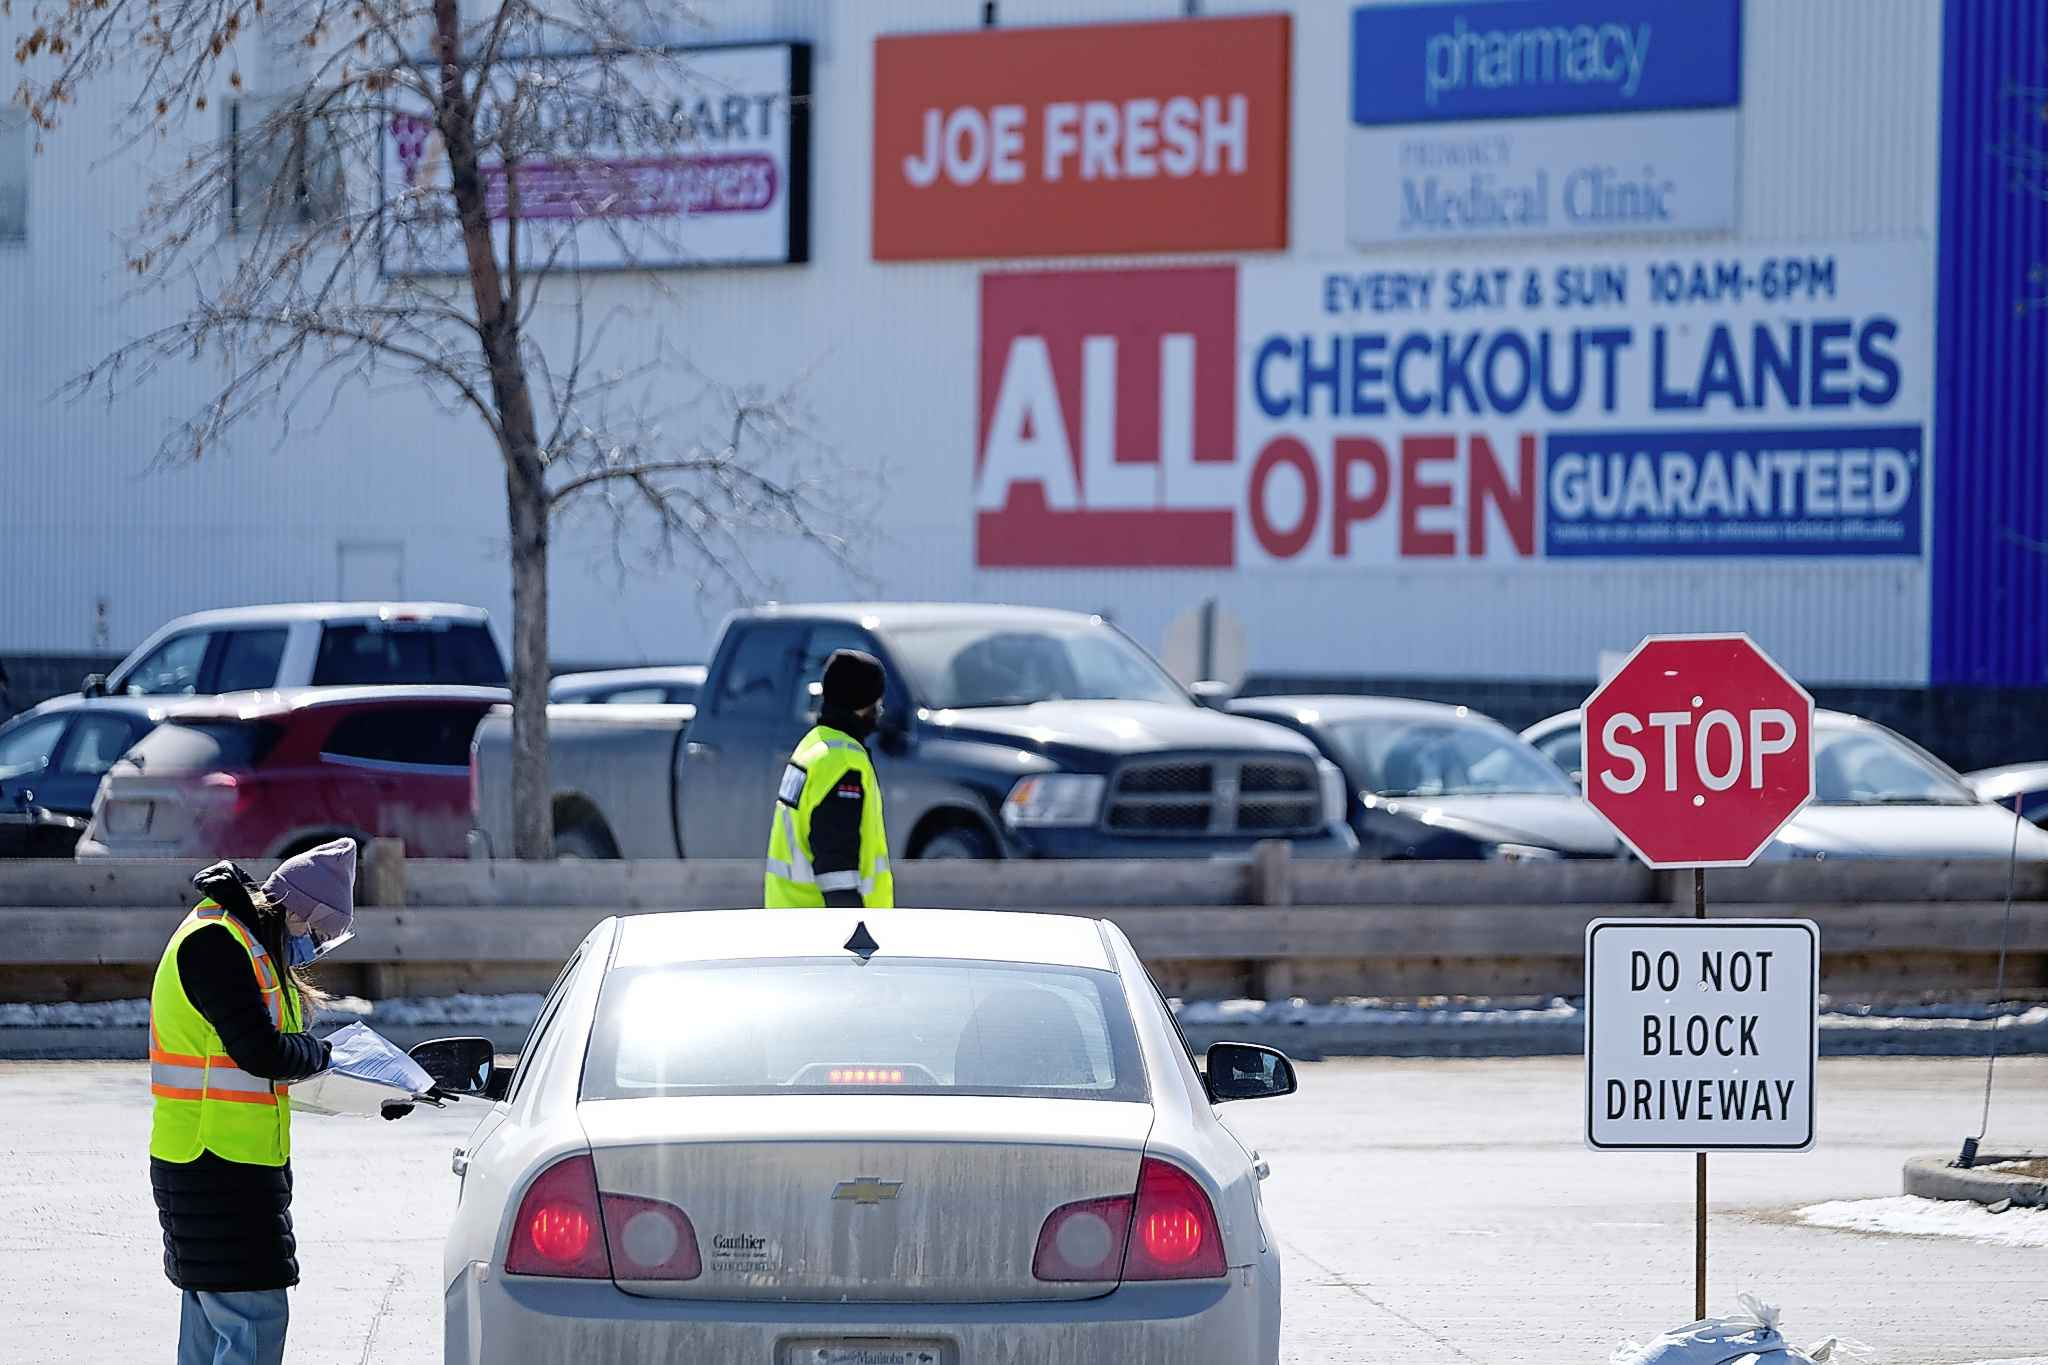 A new community screening drive-thru opens in south Winnipeg at the Manitoba Public Insurance service centre on Bison Drive Saturday. Employees vacated the premises earlier this week to make way for the testing facility. (Daniel Crump / Winnipeg Free Press)</p>